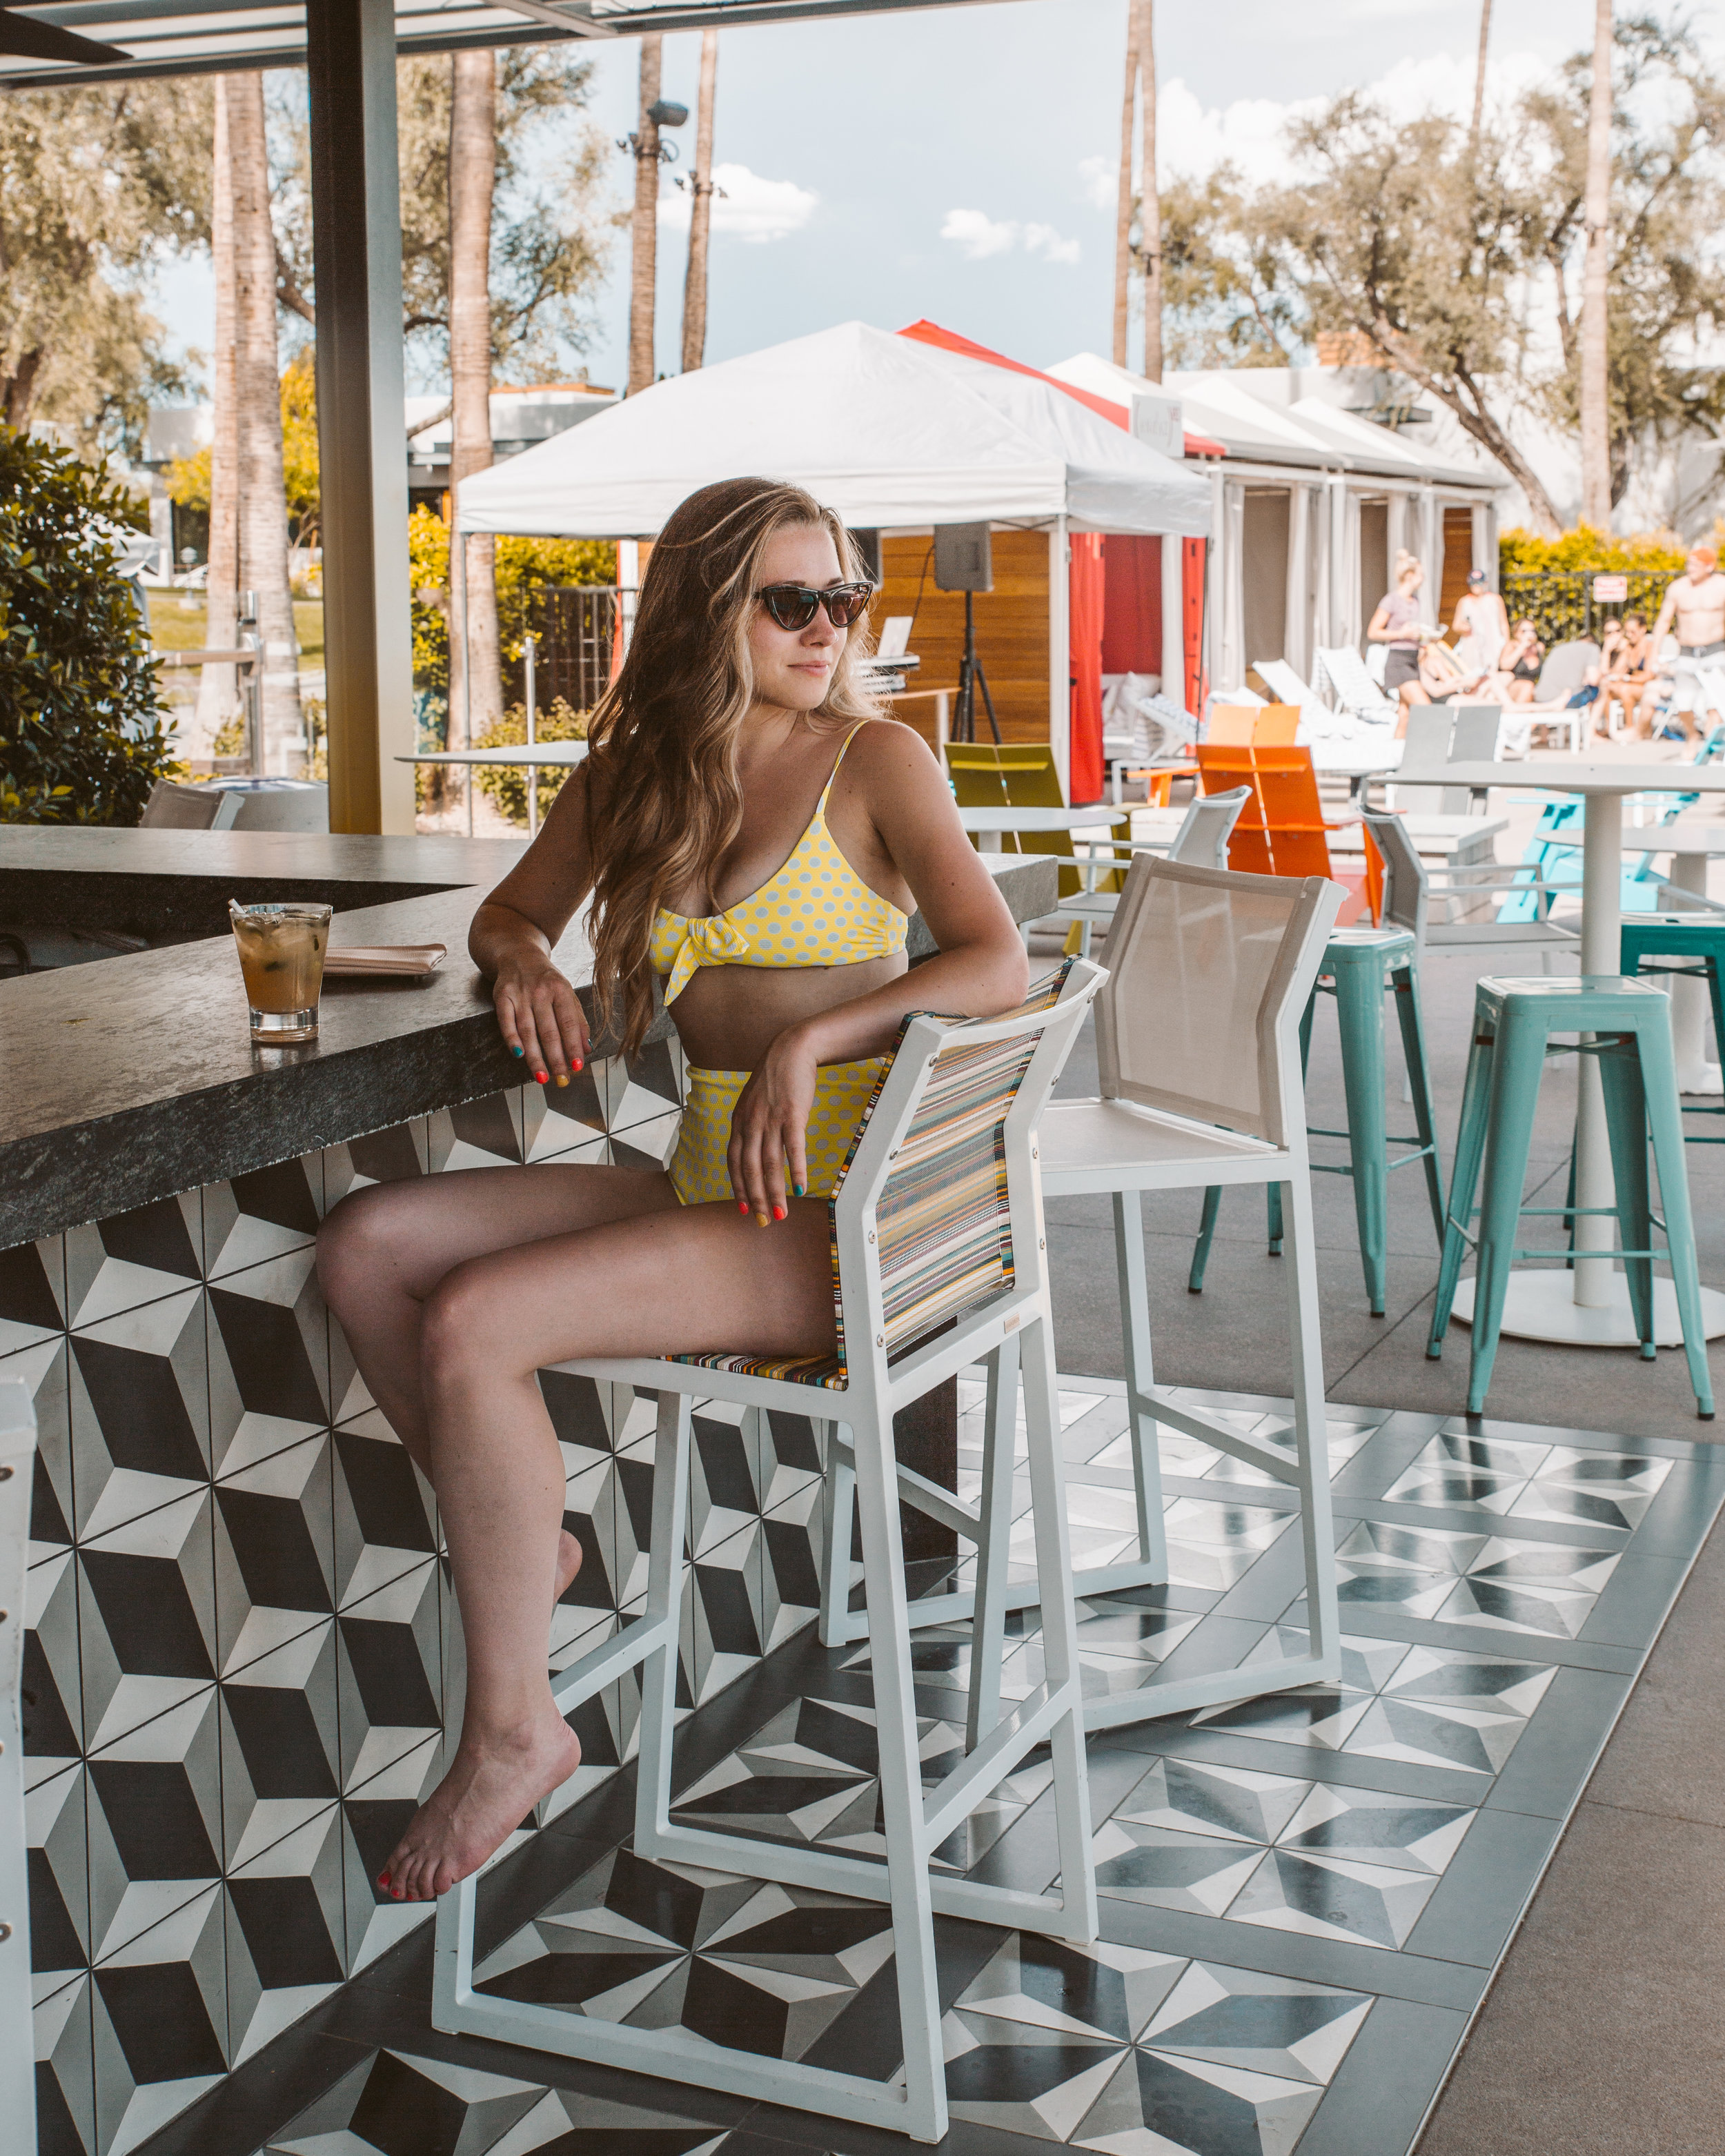 Sadie sitting at the fun poolside bar. We loved the modern look & feel of this space.